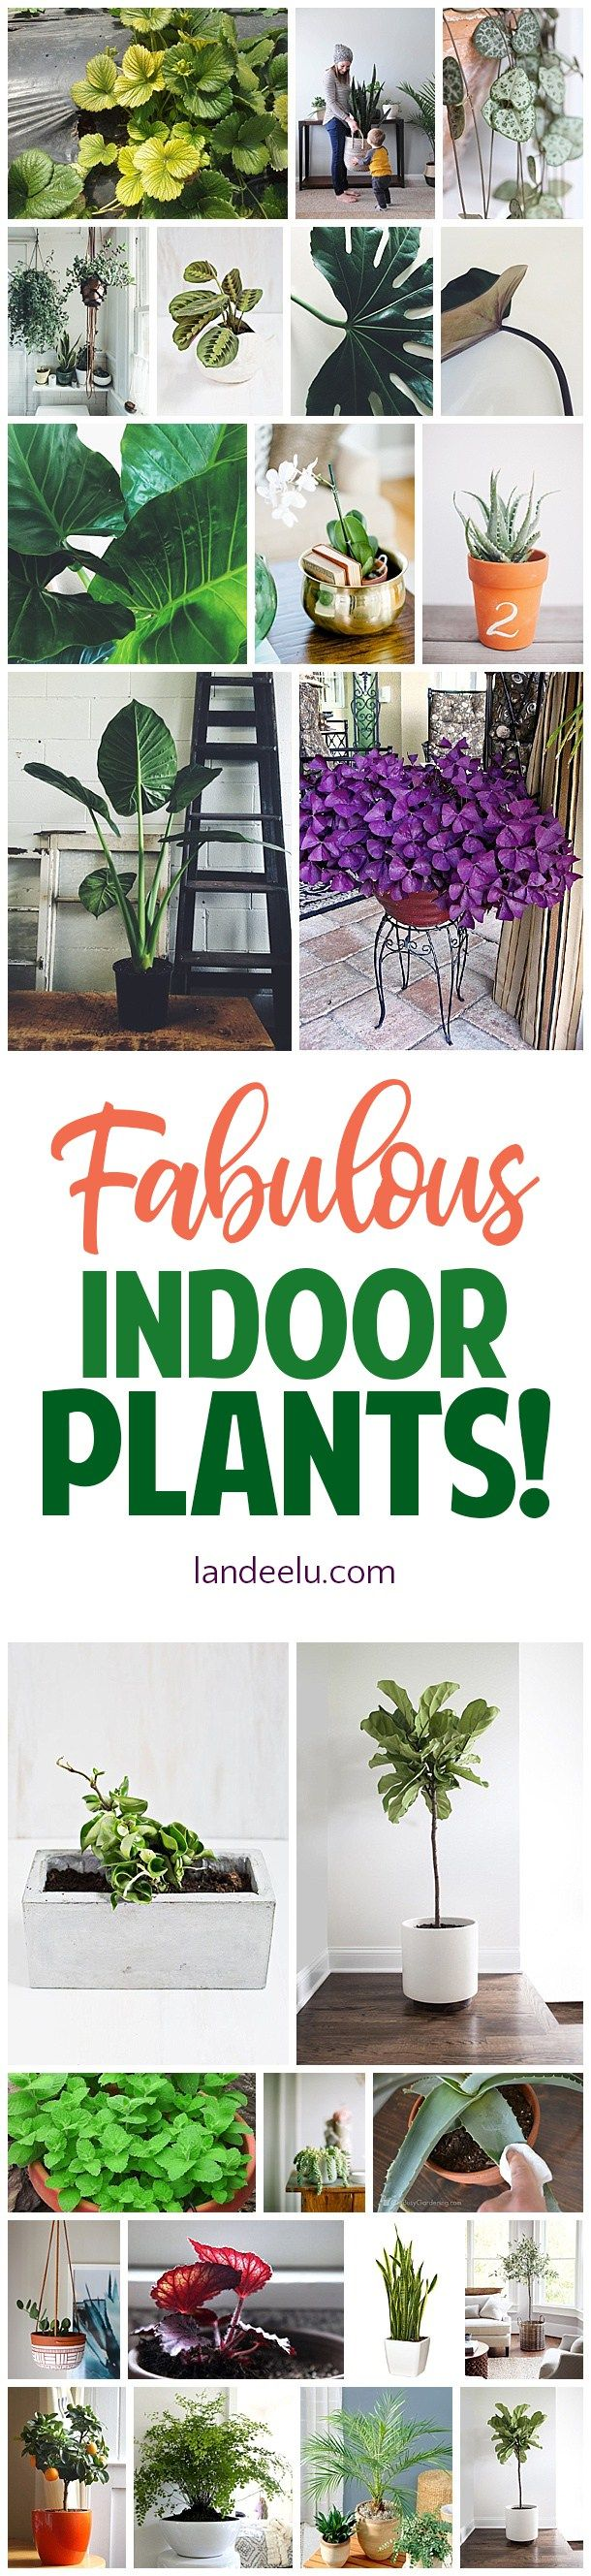 Great suggestions for the best indoor plants for the home! #plantlady #indoorpla...